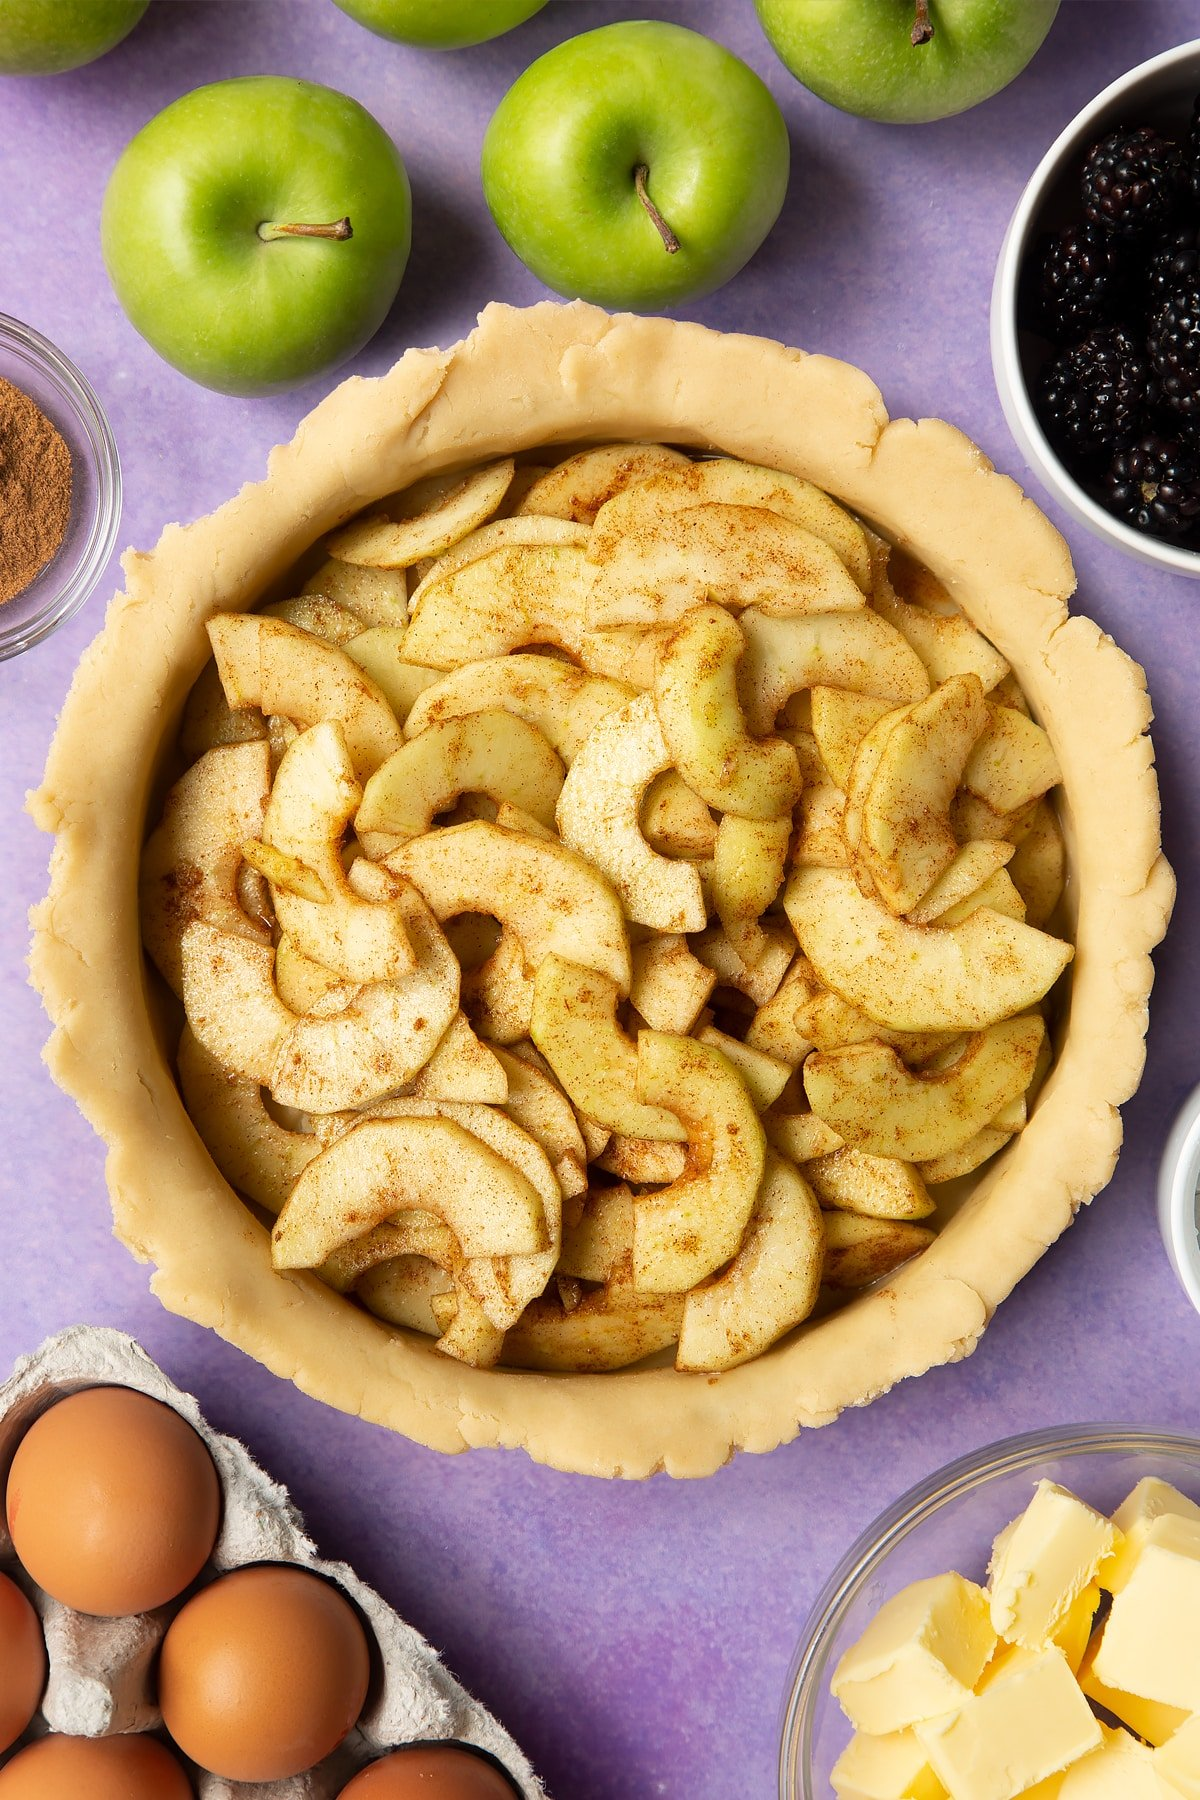 A pie tin lined with pastry and filled with cinnamon apple slices. Ingredients to make apple and blackberry pie surround the tin.